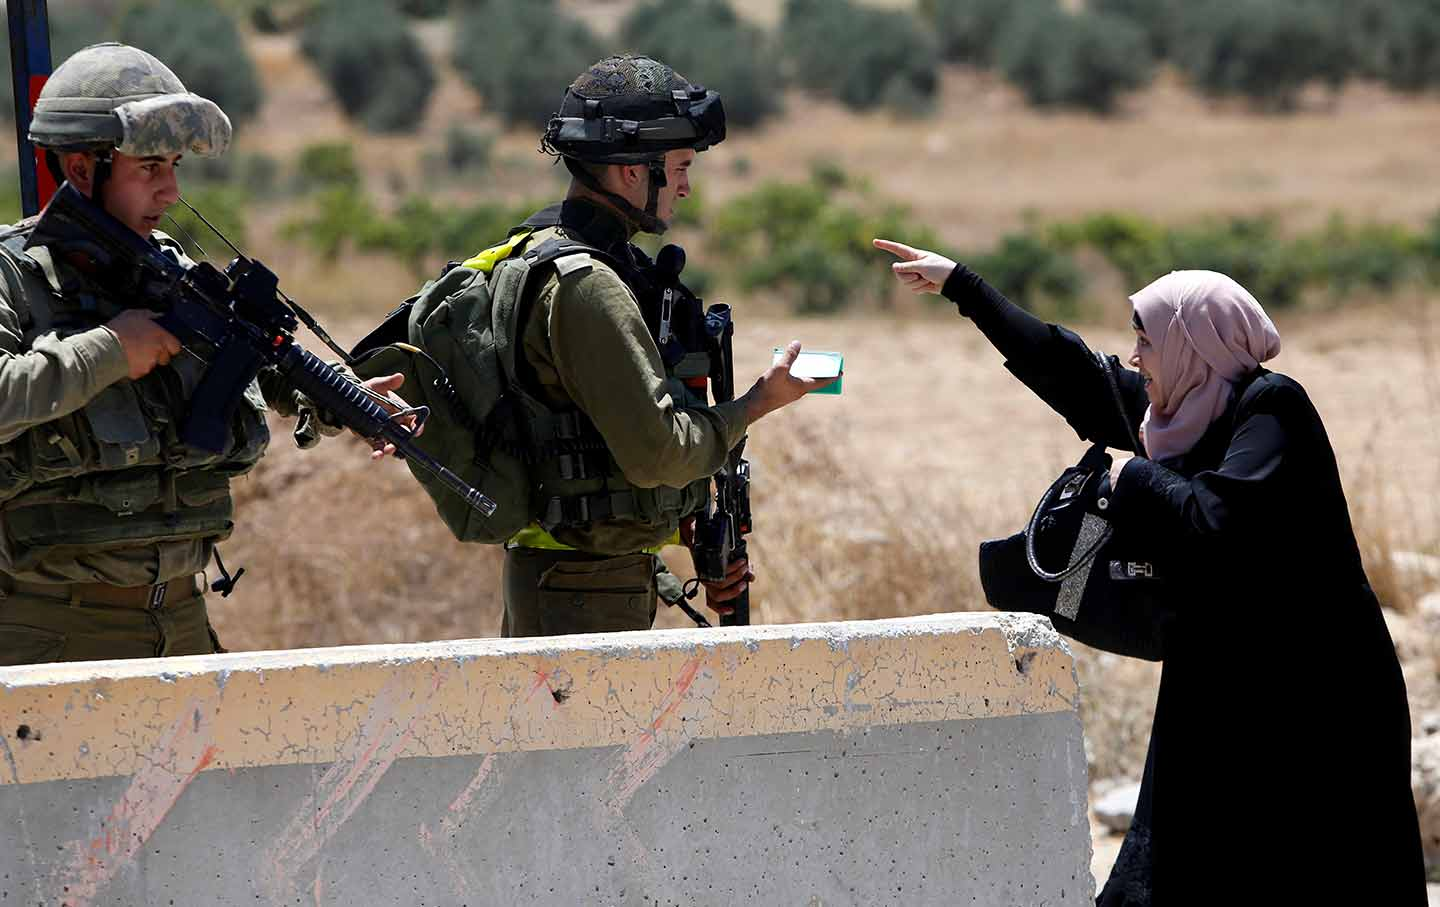 A Palestinian woman argues with Israeli soldiers at a West Bank checkpoint south of Hebron on August 16, 2016. (Reuters / Mussa Qawasma)